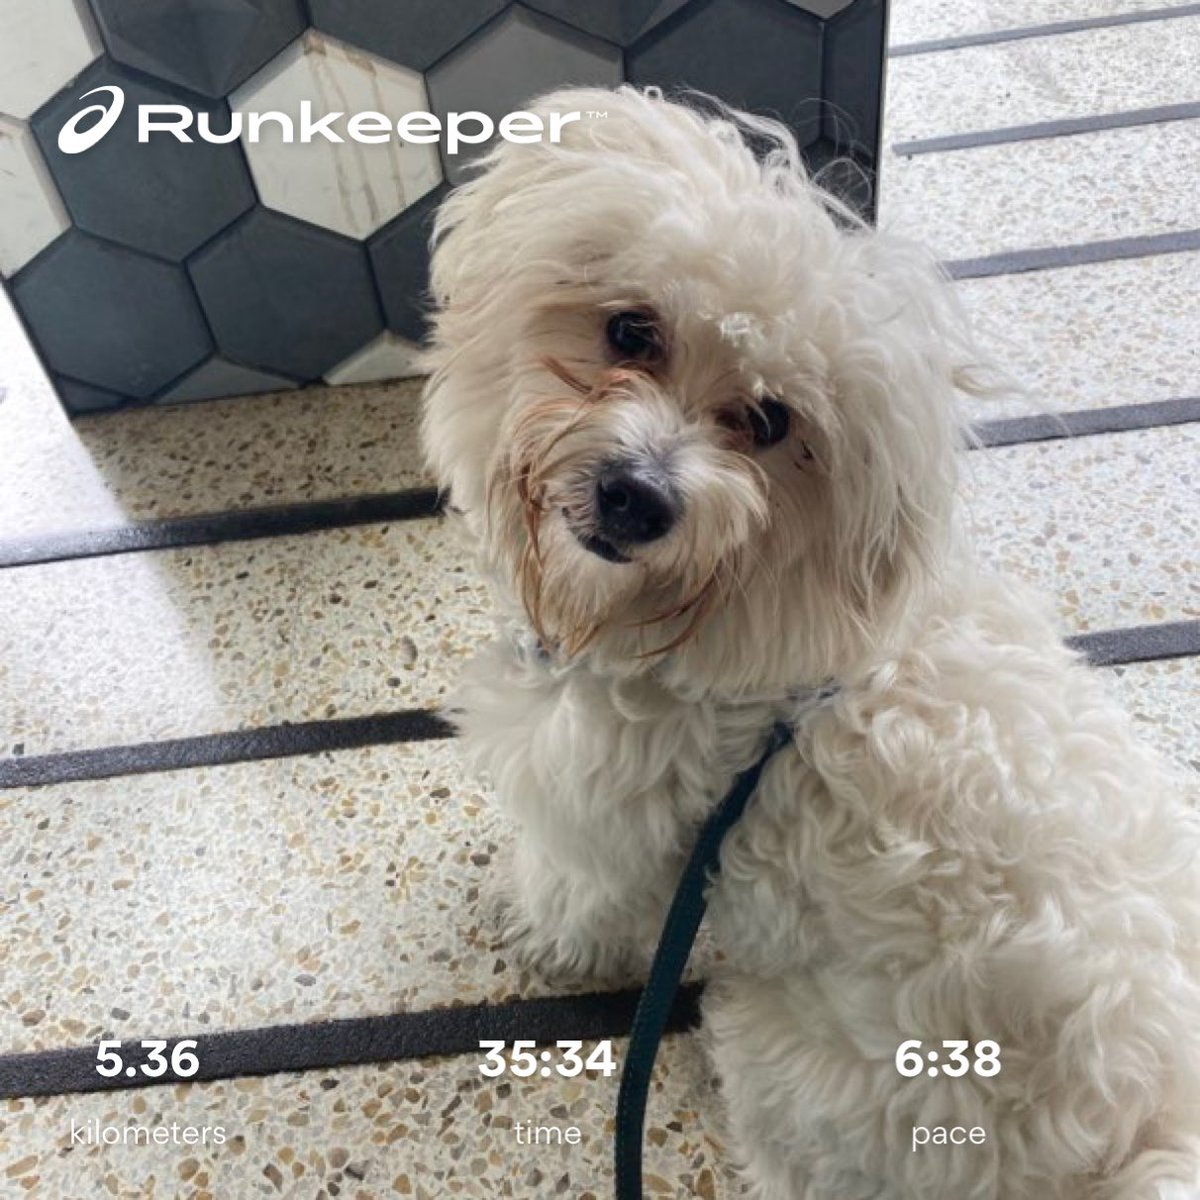 #run with Pebbles. It was nice to get out after the rain https://t.co/oW5vJGu2Ku